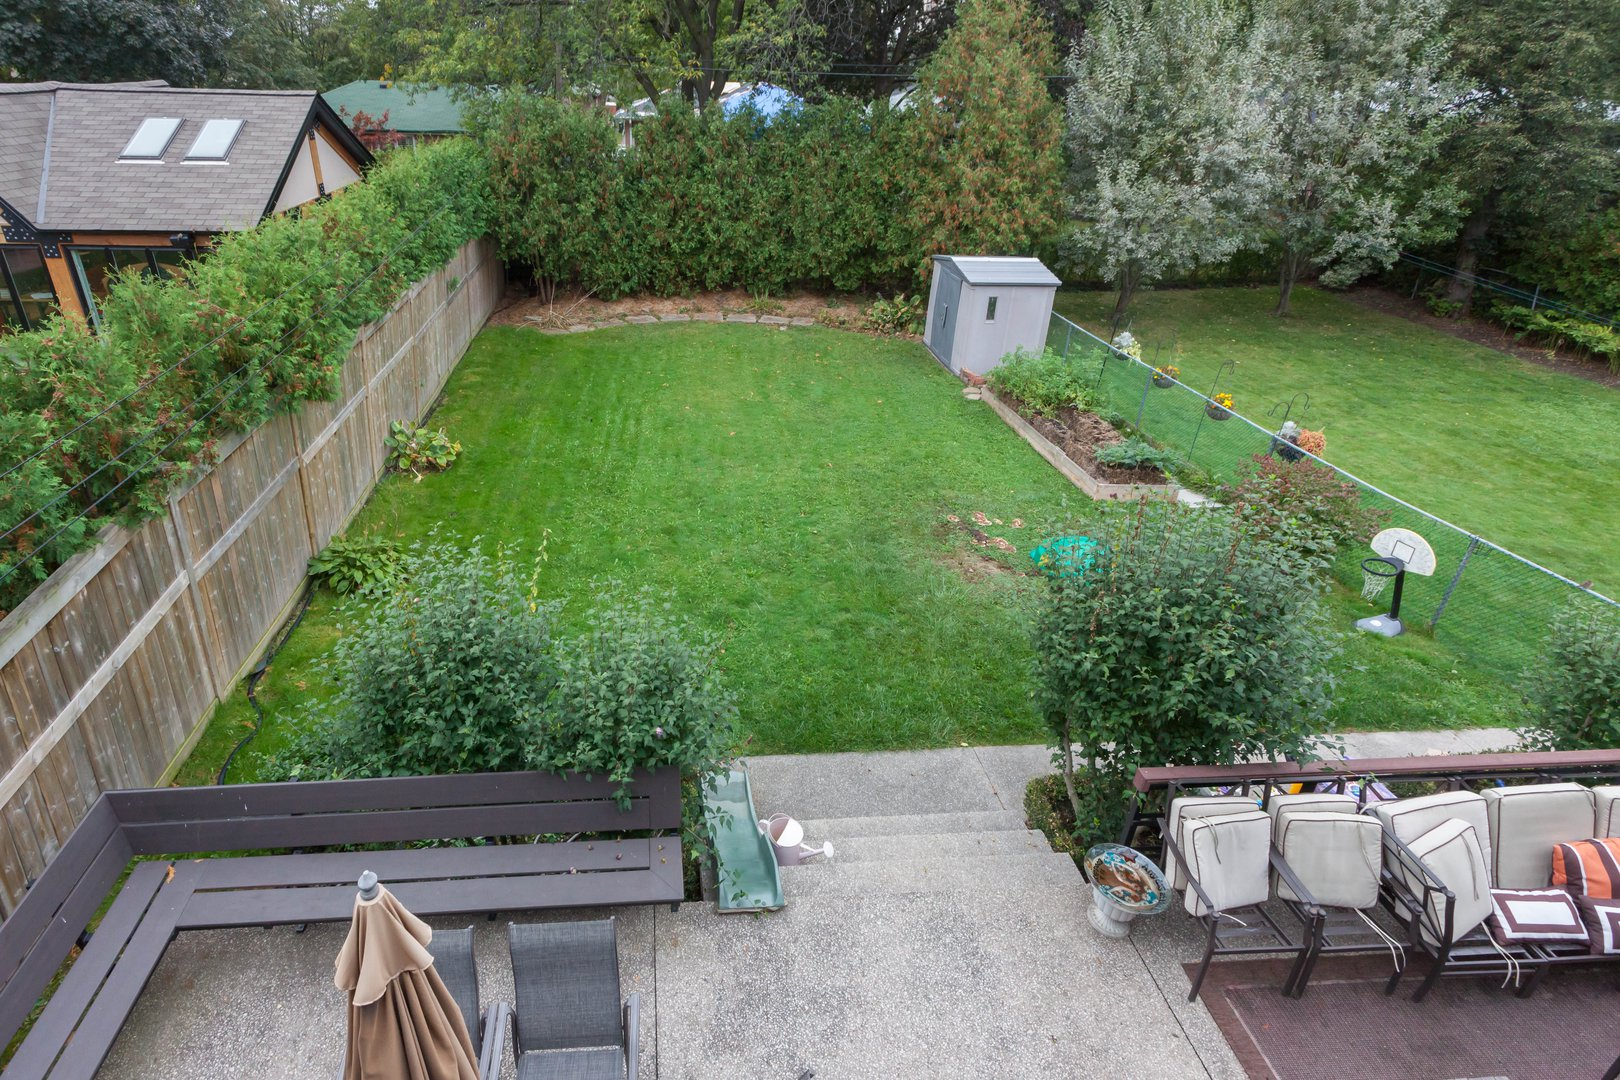 House for rent at 84 Laurel Avenue, Etobicoke, ON. This is the backyard with lawn.